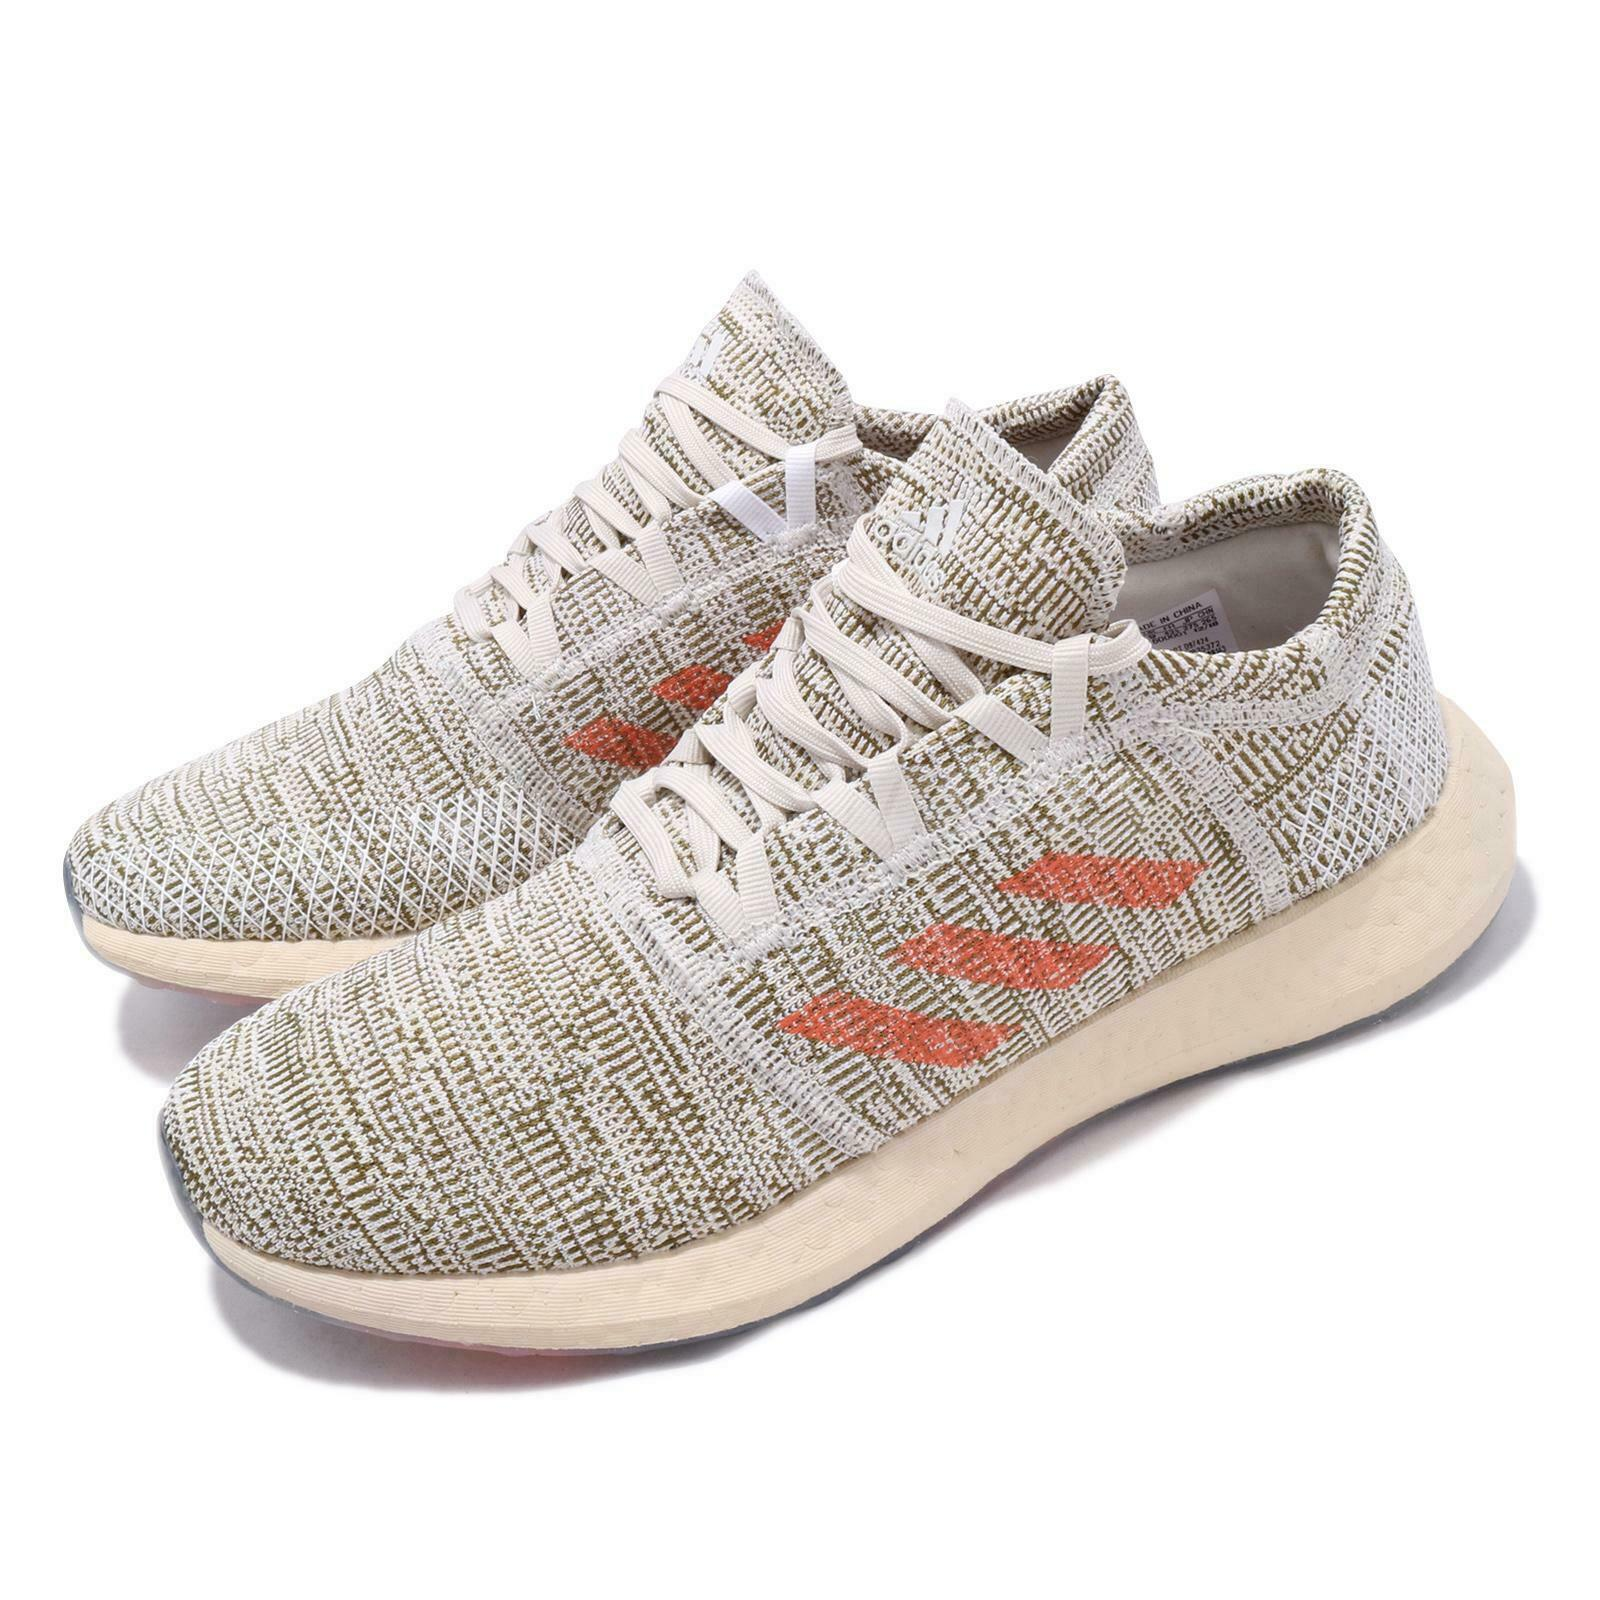 70f90276576bf Adidas Pureboost Go LTD Raw White orange Cargo Men Running D97424 Trace  shoes zapgli5875-Athletic Shoes